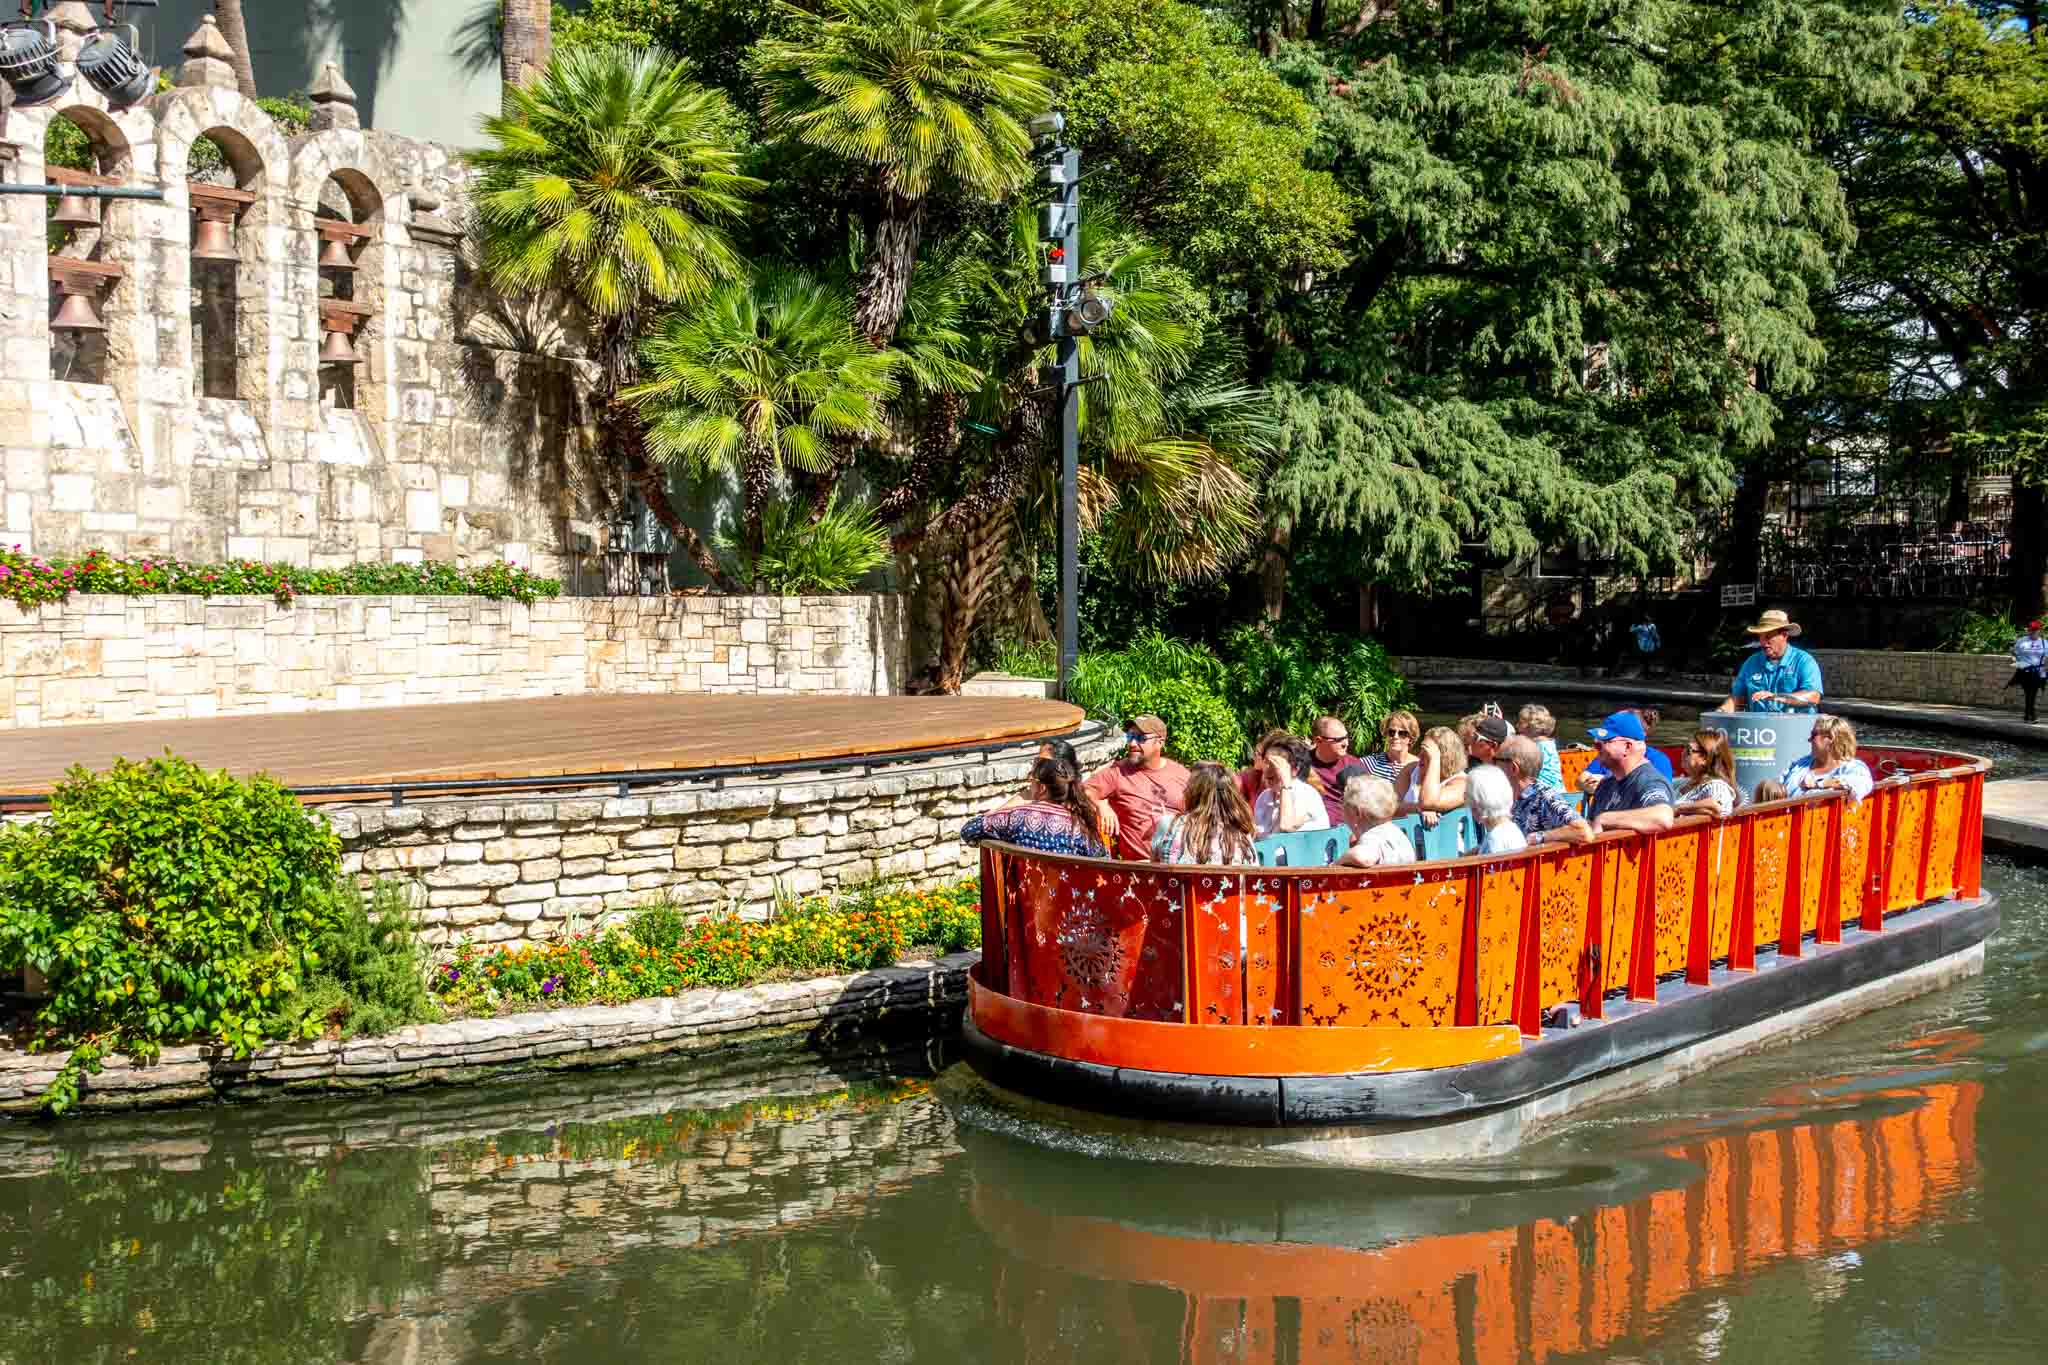 People in an orange barge cruising the river